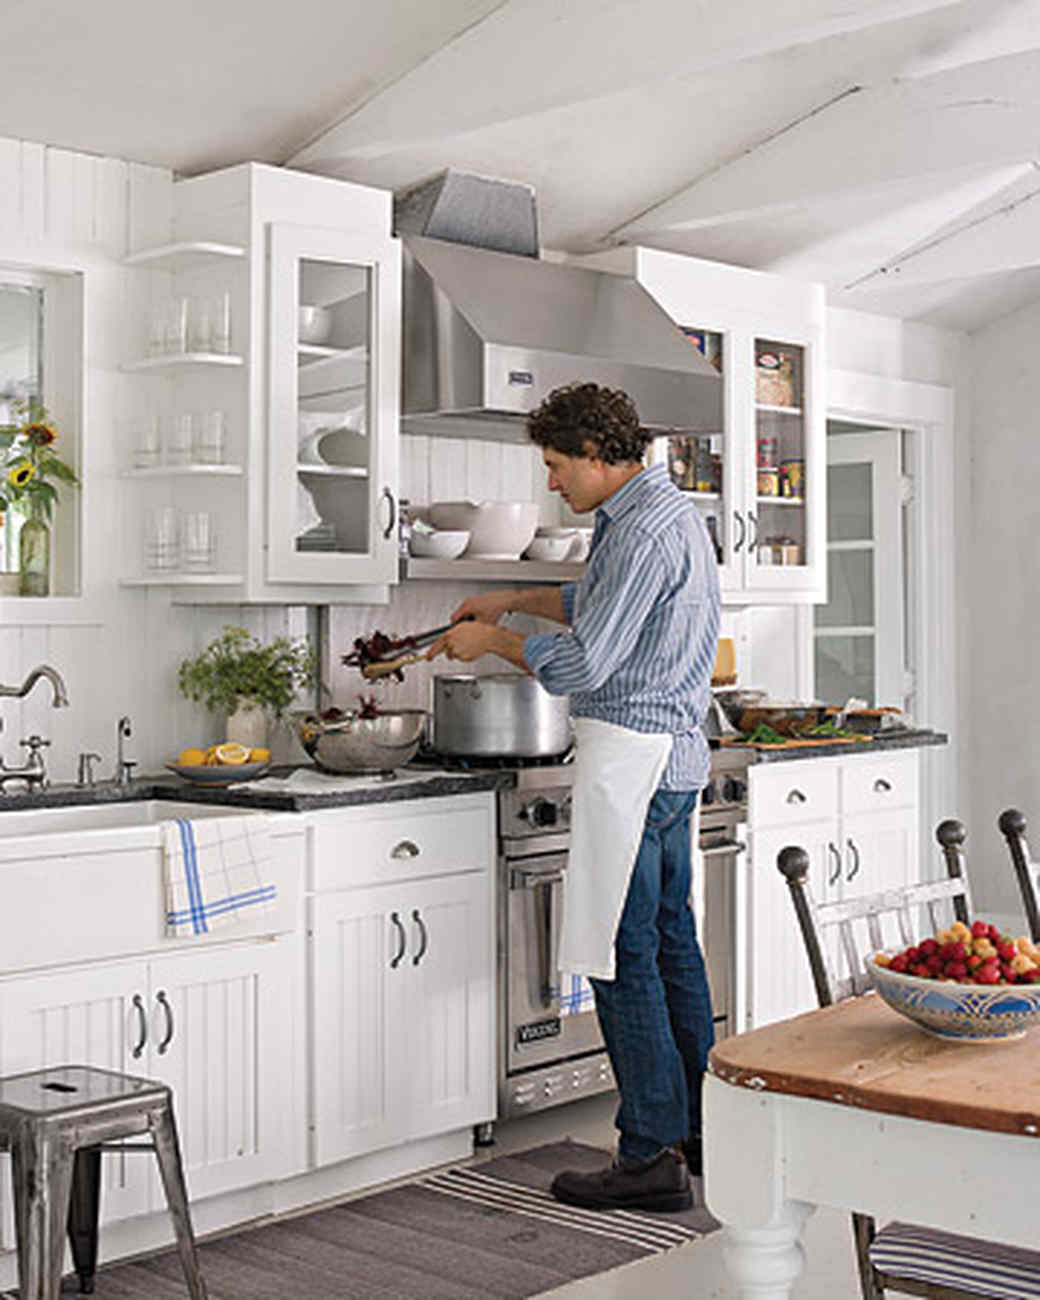 mld103531_0708_kitchen.jpg